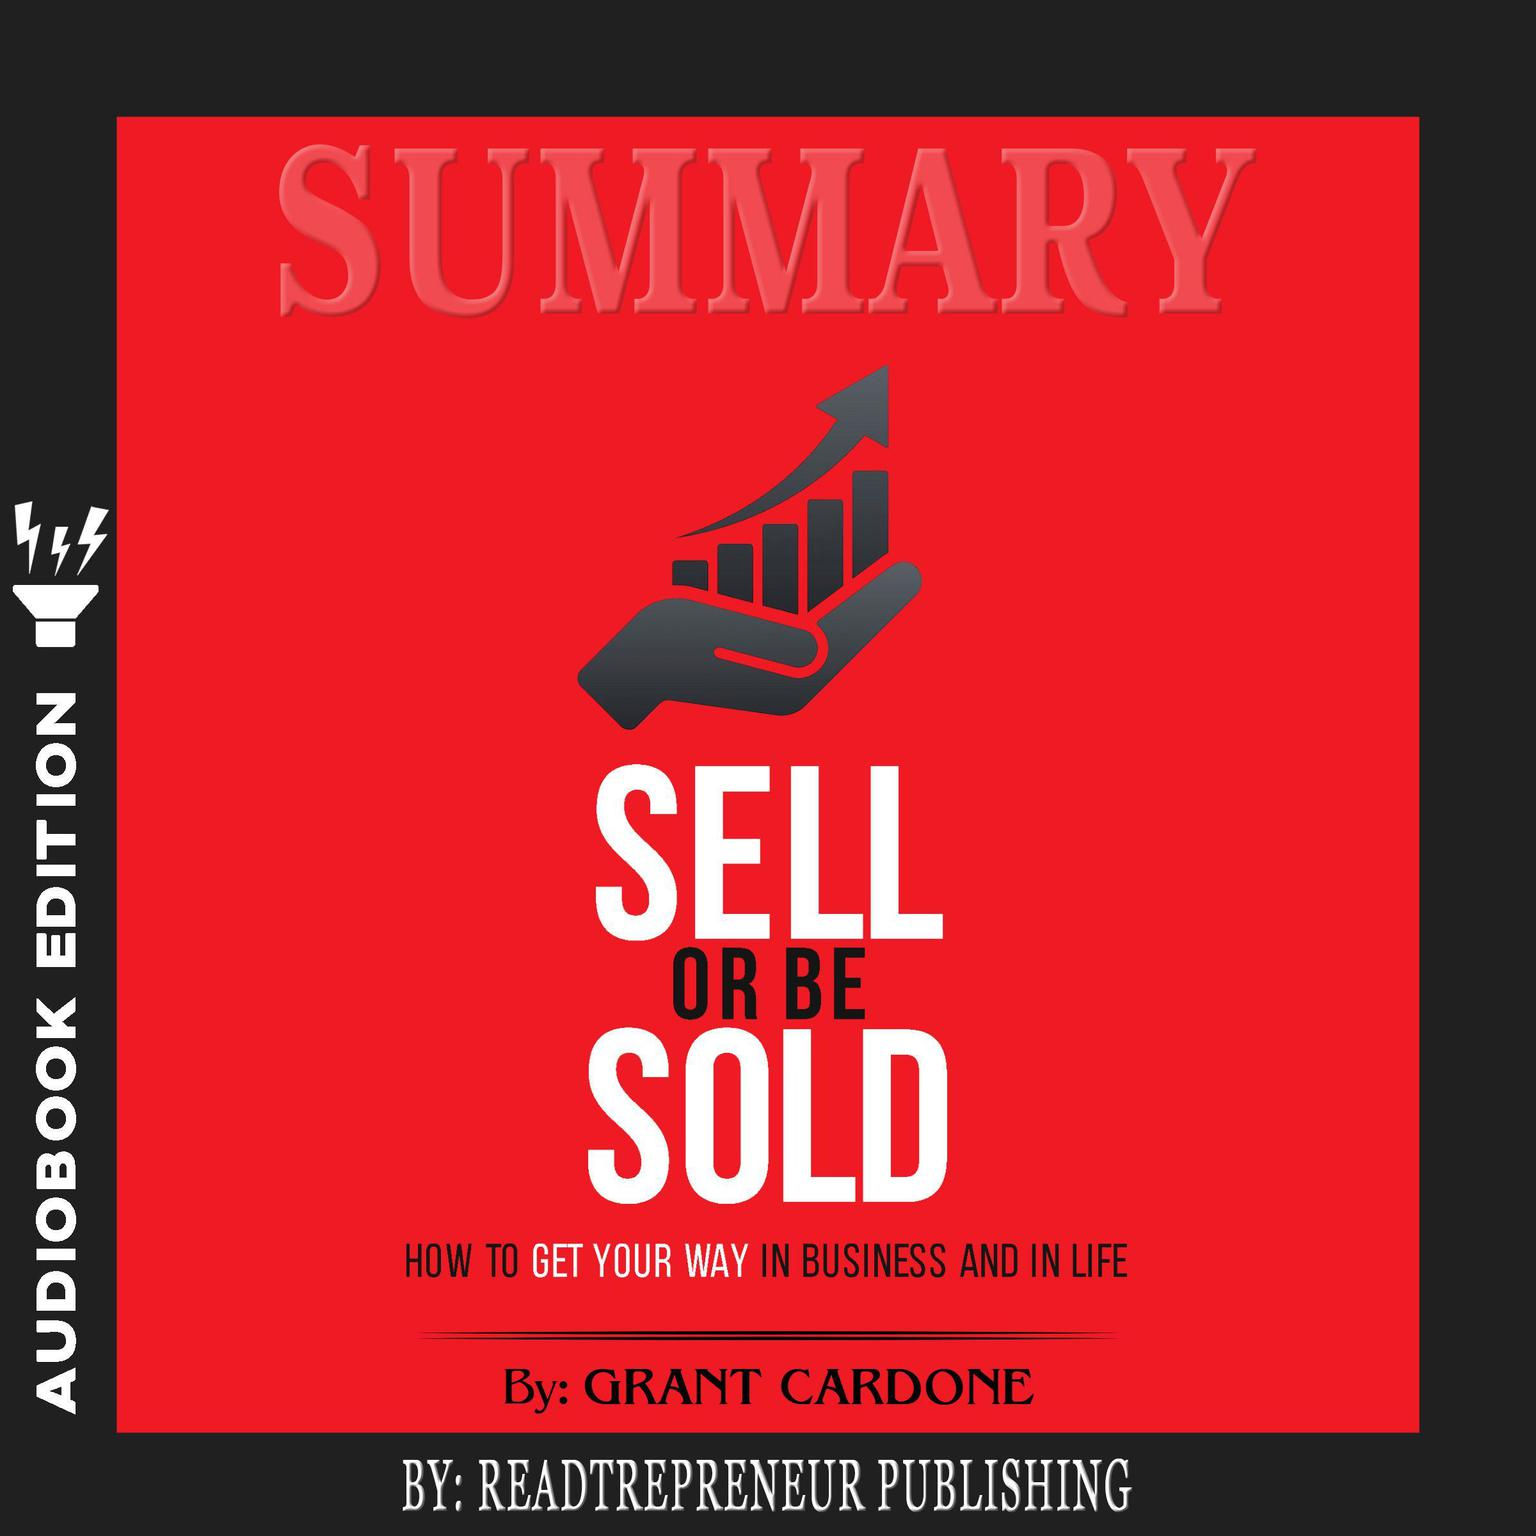 Summary of Sell or Be Sold: How to Get Your Way in Business and in Life by Grant Cardone Audiobook, by Readtrepreneur Publishing